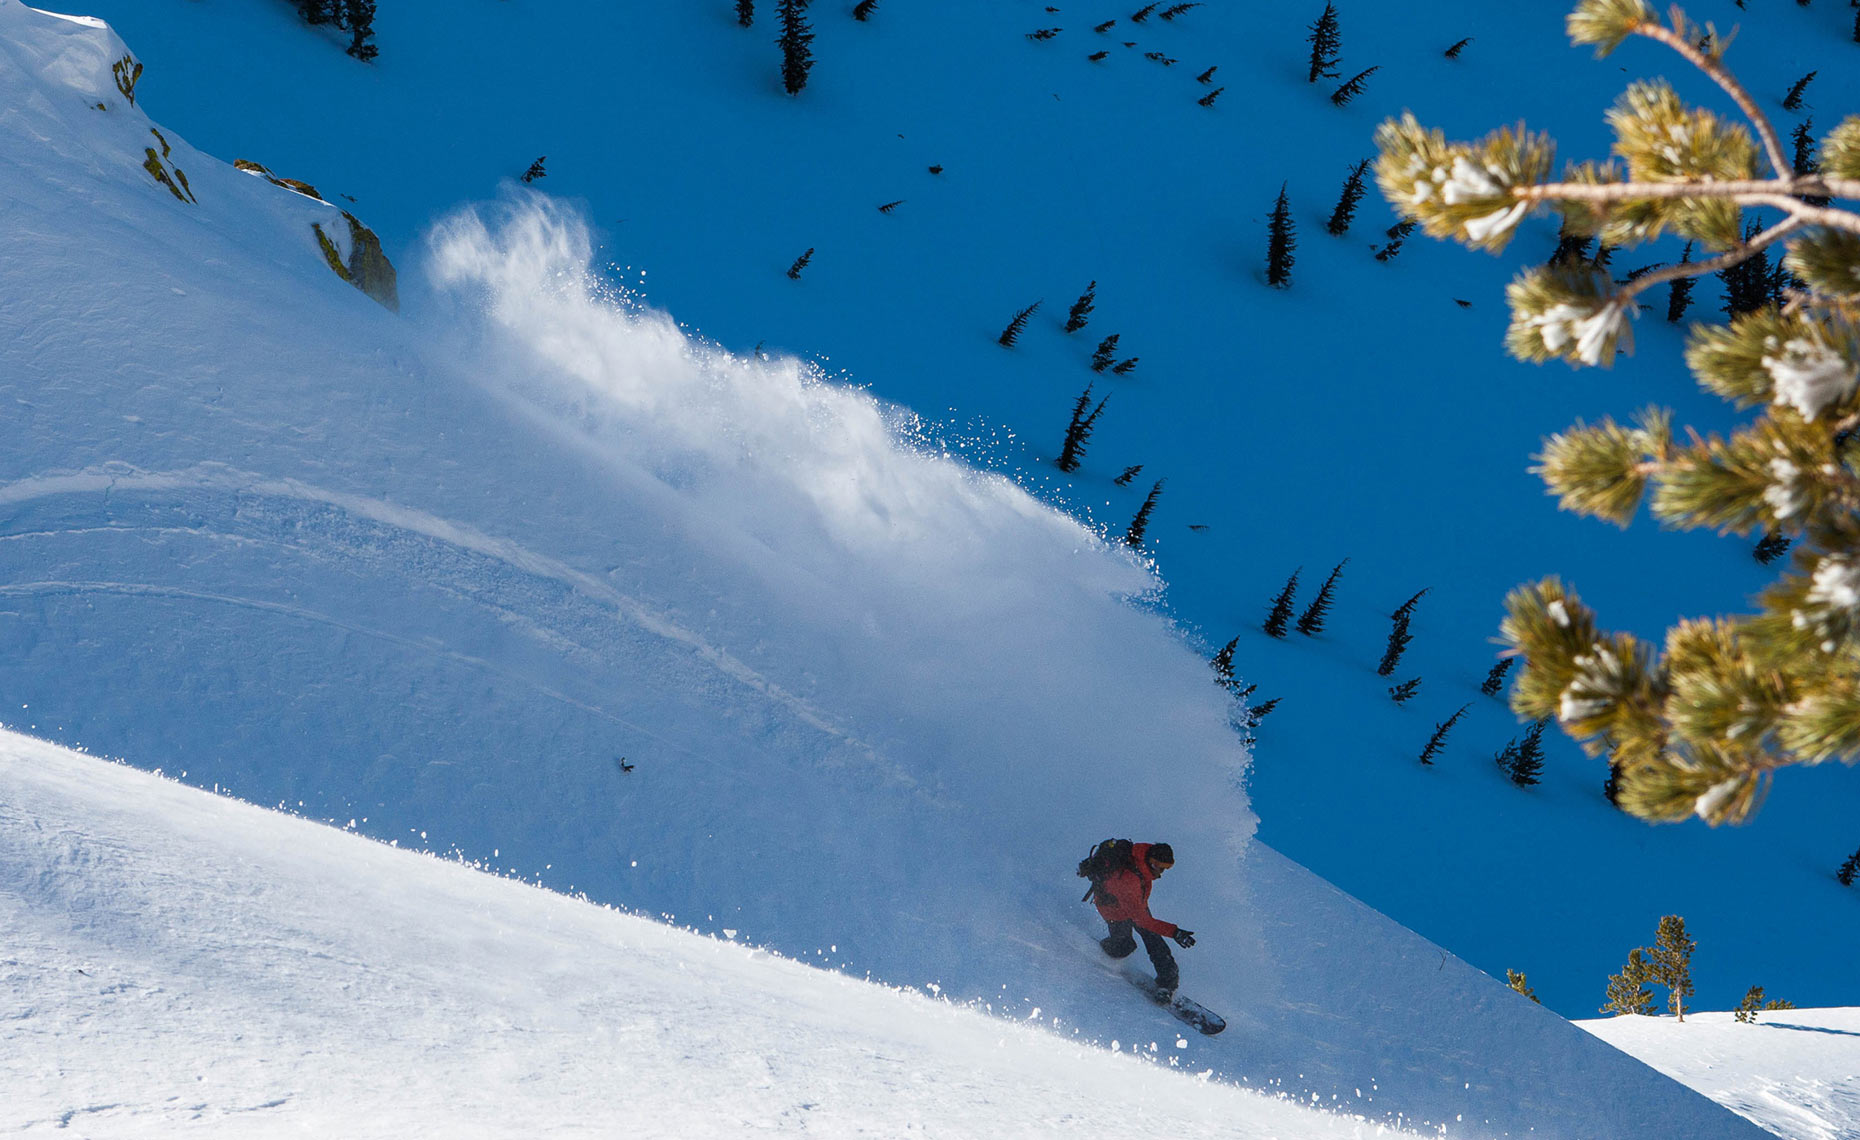 Phantom-Lifts-June-To-Mammoth-TWSNOW-Chris-Wellhausen-17